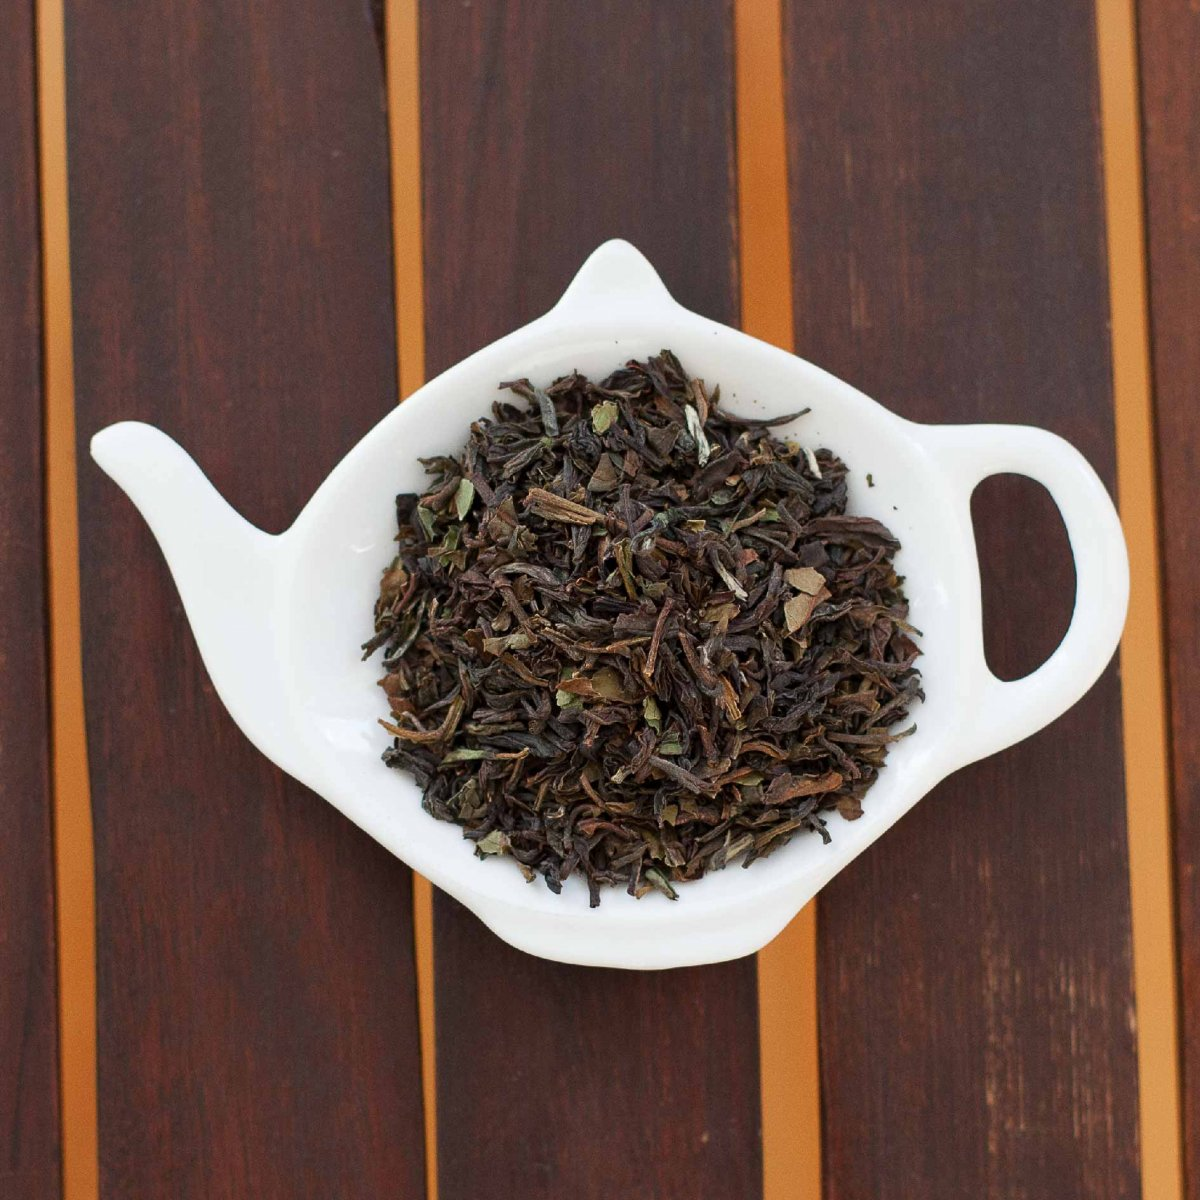 Chá Darjeeling FTGFOP1  2nd Flush Chá do Ano